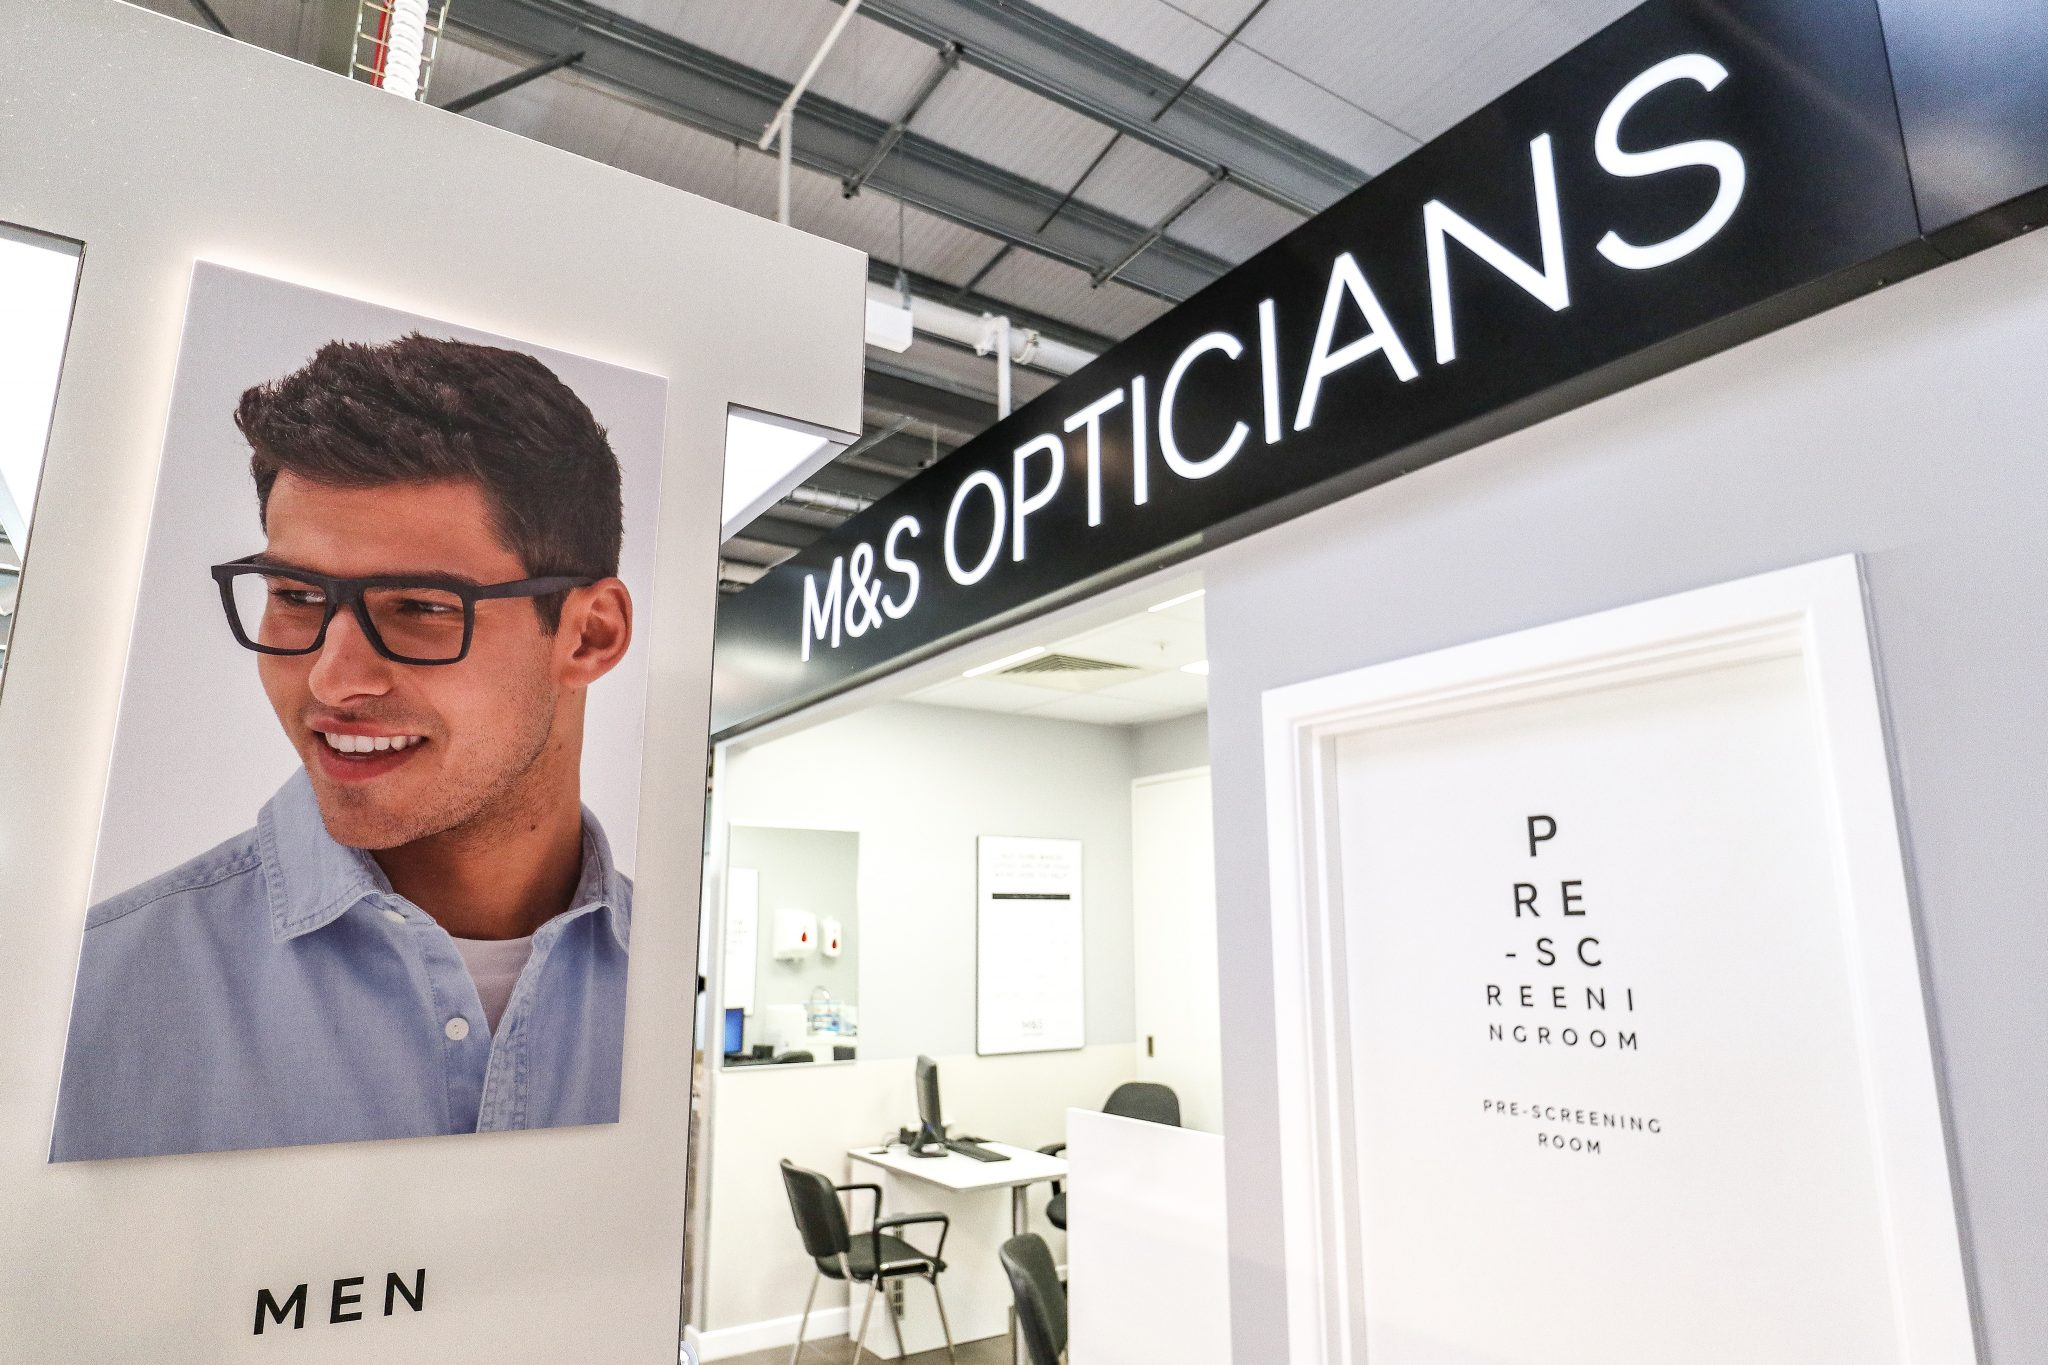 M&S Opticians, York